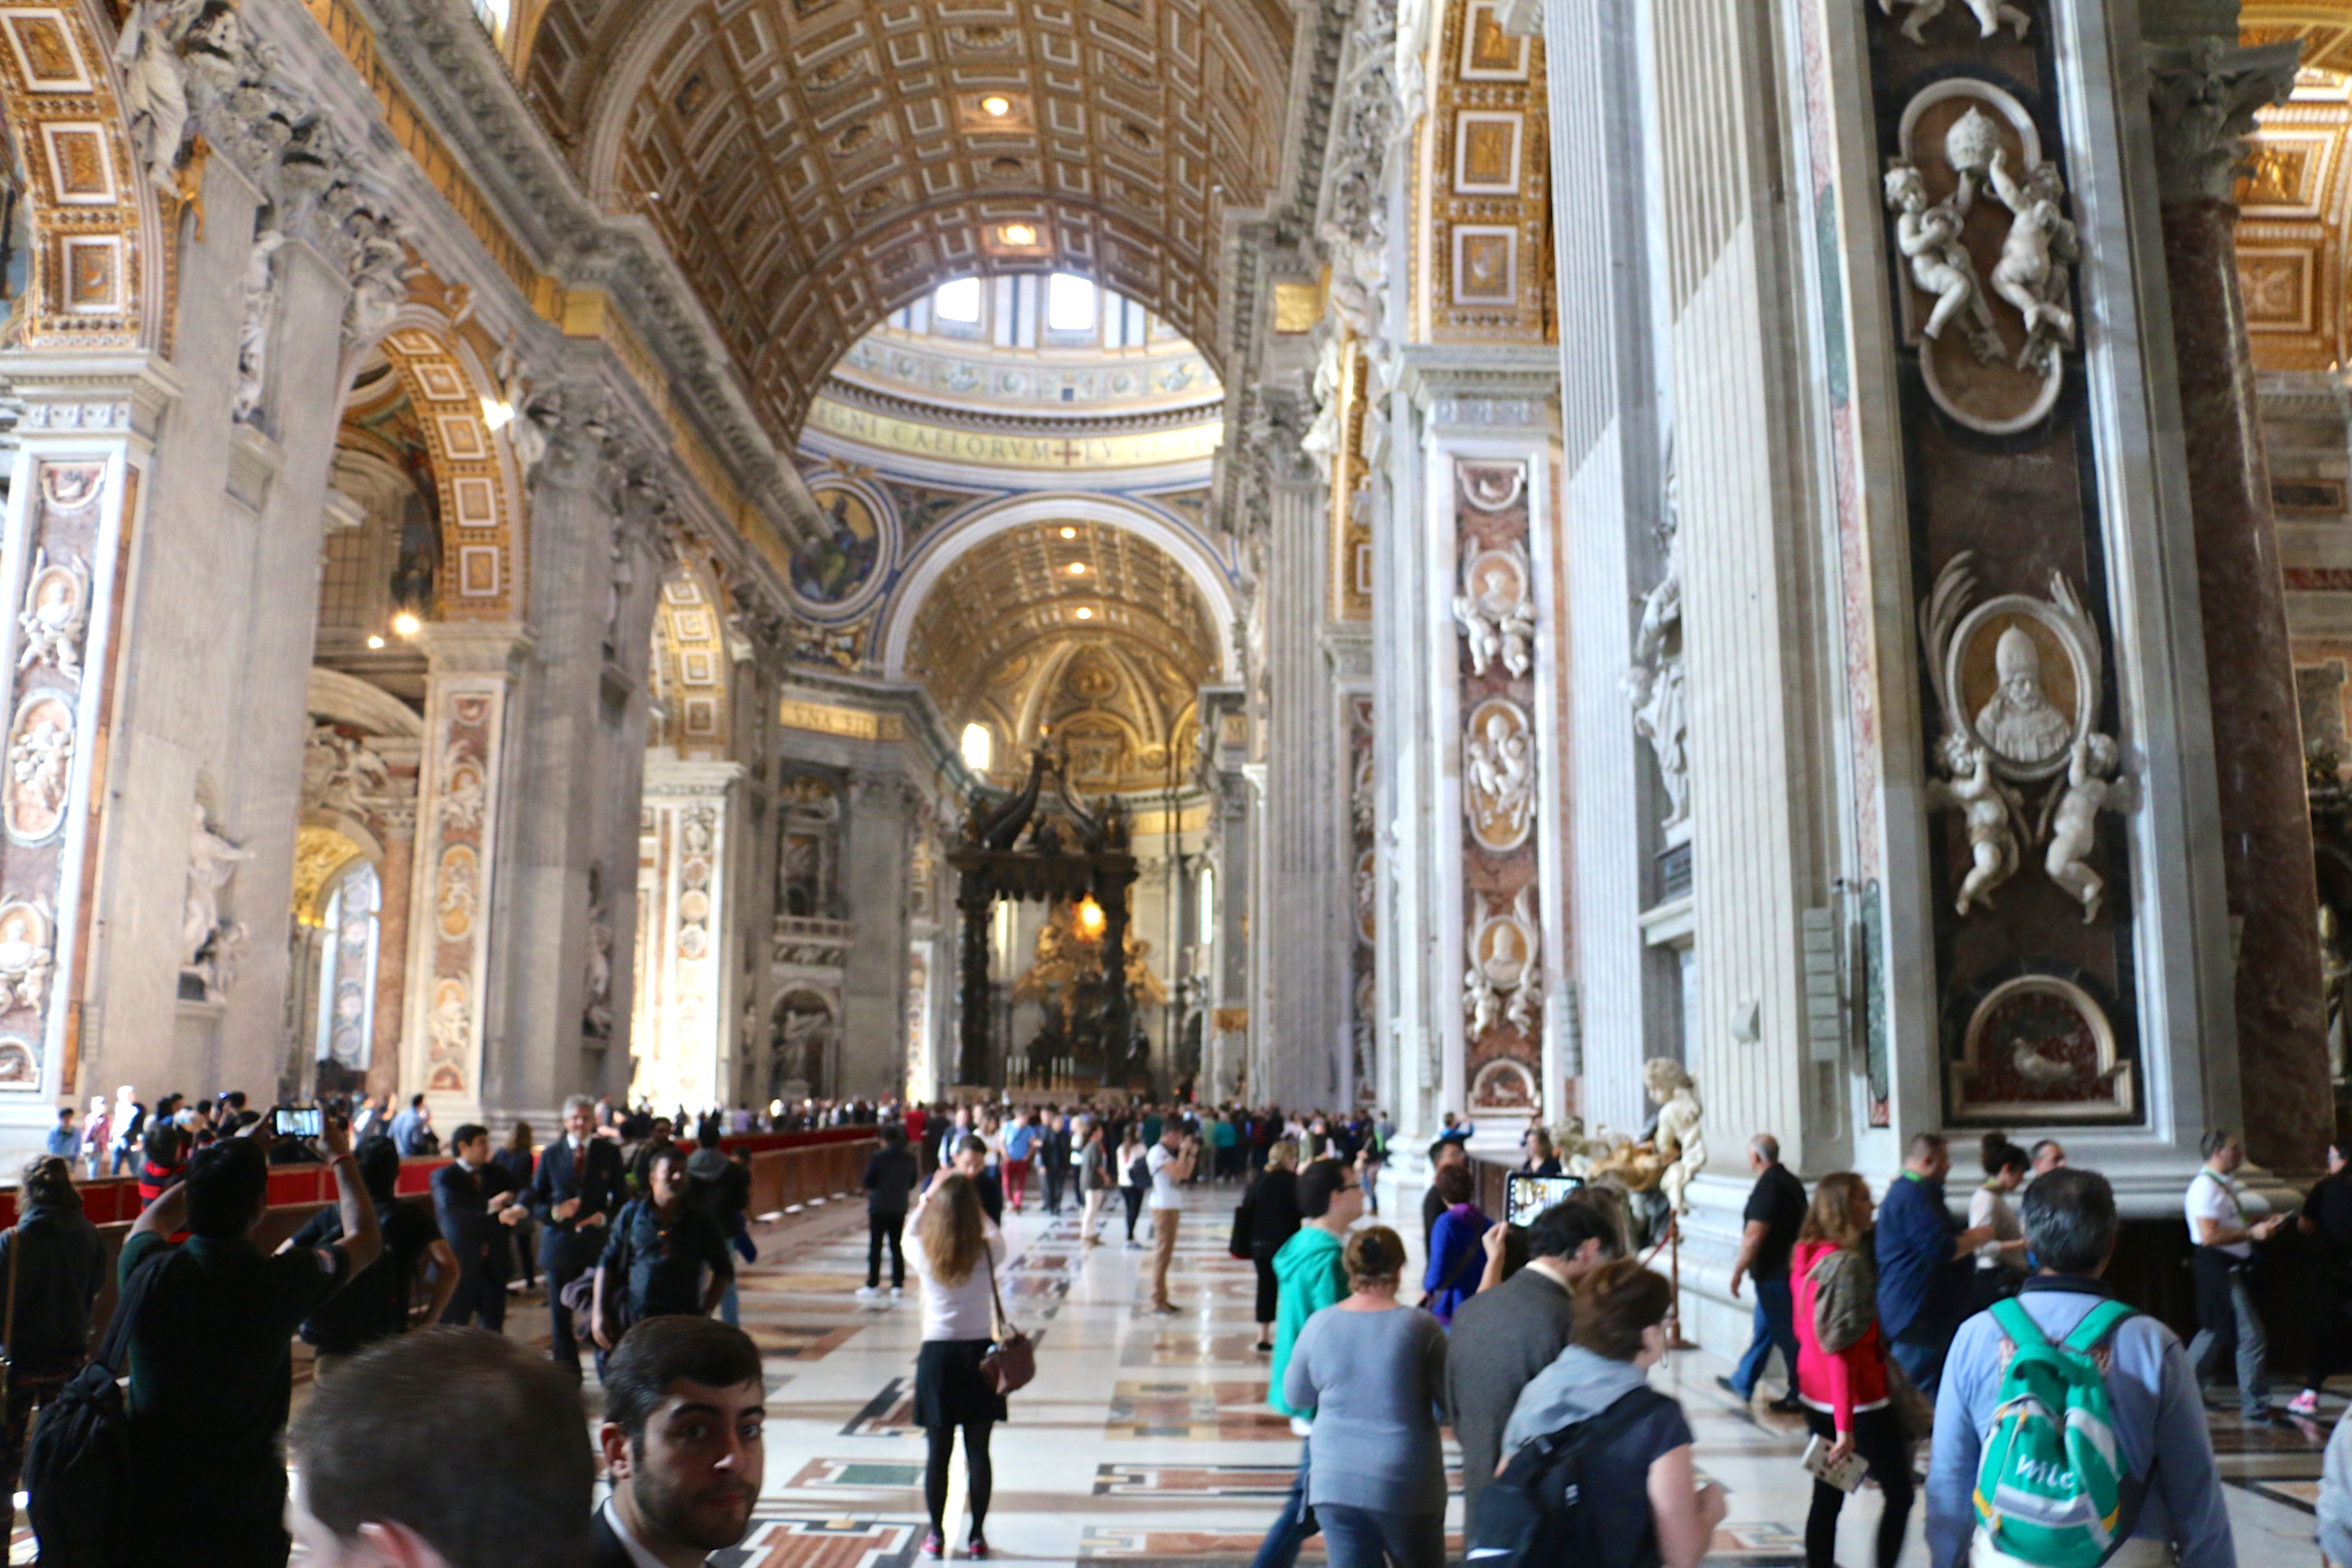 St. Peter's Basilica Rome Italy 11